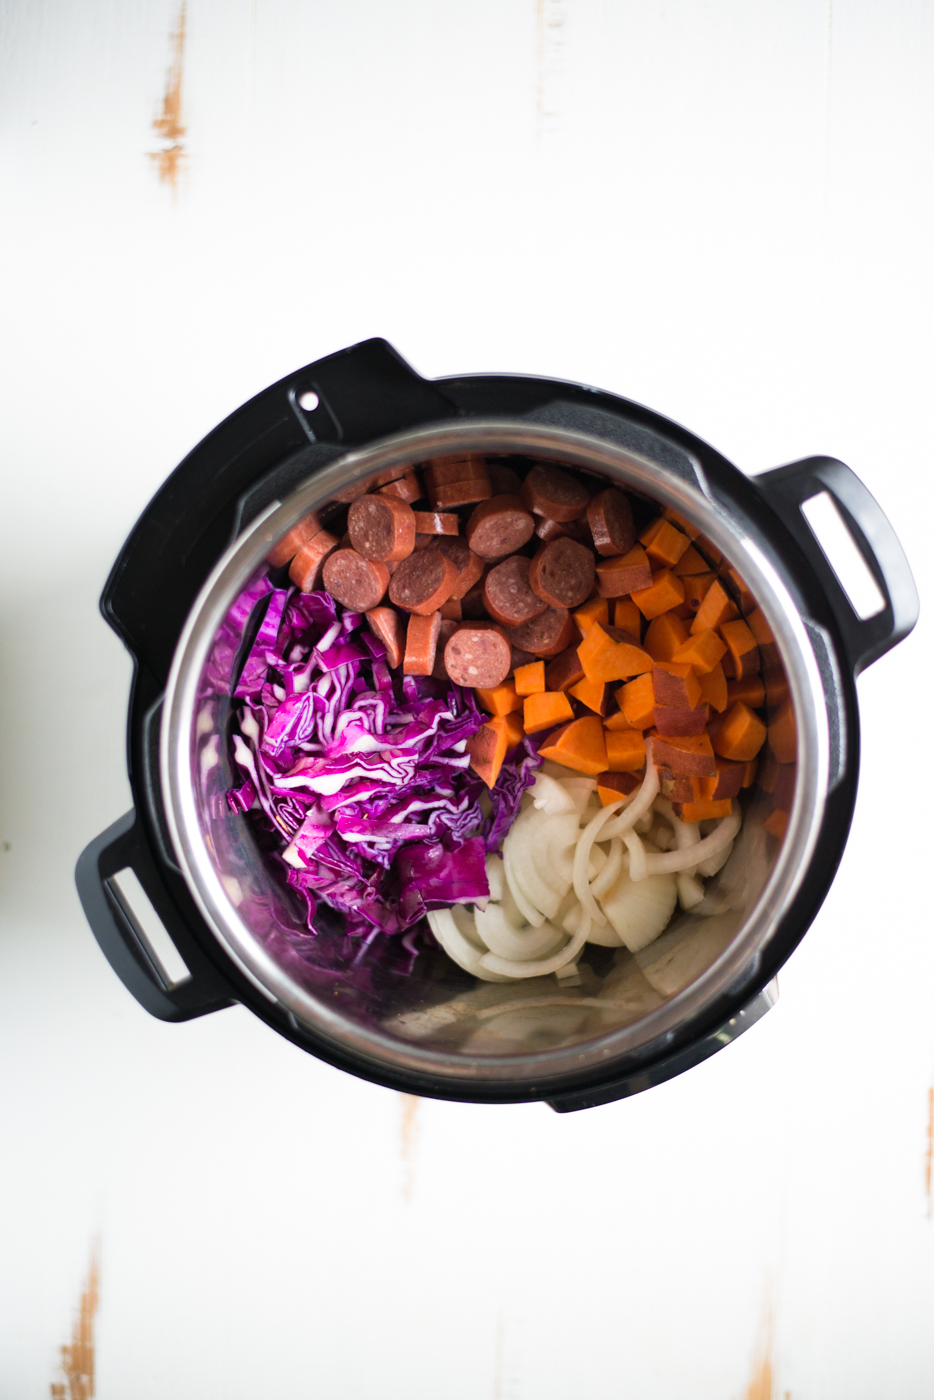 Sausage, Cabbage & Sweet Potato Stew is a super-simple, ultra comforting one-pot meal that comes together in a matter of minutes. A cozy, delicious gluten-free, dairy-free, whole30 recipe that can be made in the Instant Pot, Crockpot or stove top. #realfoodwholelife #realfoodwholeliferecipe #glutenfree #glutenfreerecipe #dairyfree #dairyfreerecipe #healthy #healthyrecipe #easyrecipe #quickrecipe #cleaneating #instantpot #crockpot #slowcooker #recipe #whole30 #whole30recipe